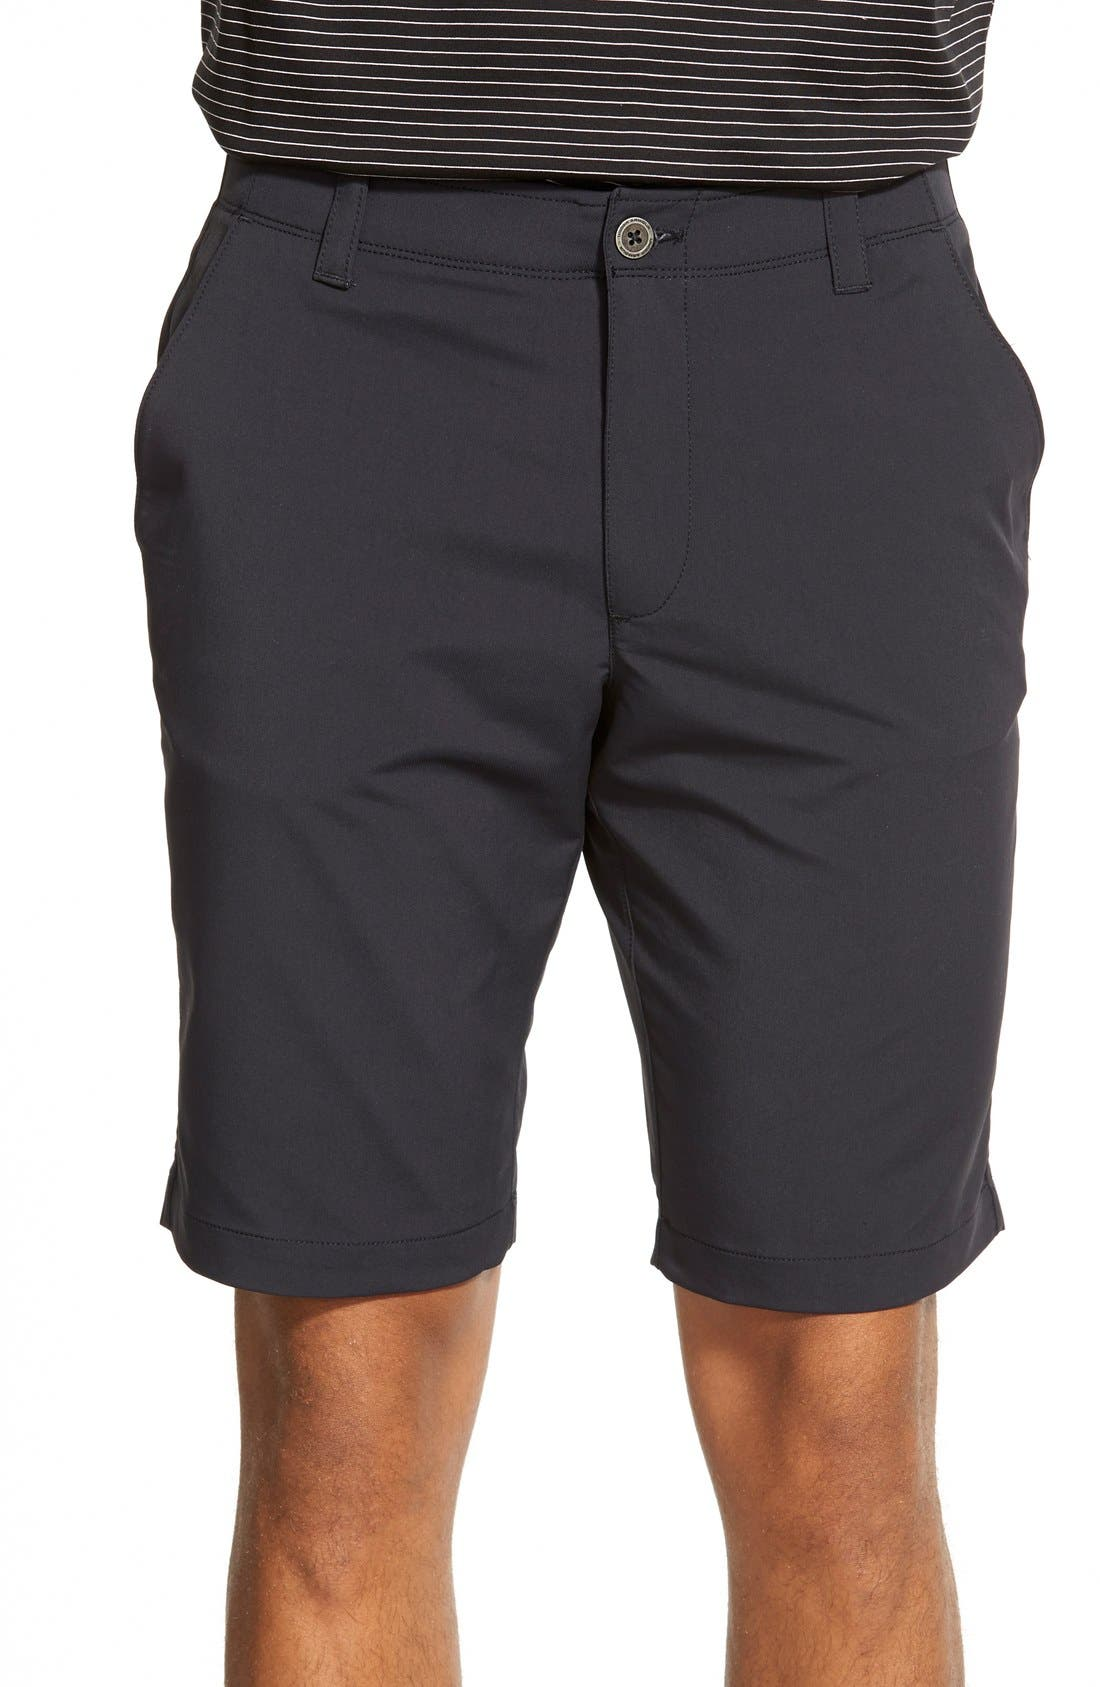 Alternate Image 1 Selected - Under Armour 'Matchplay' Moisture Wicking Golf Shorts